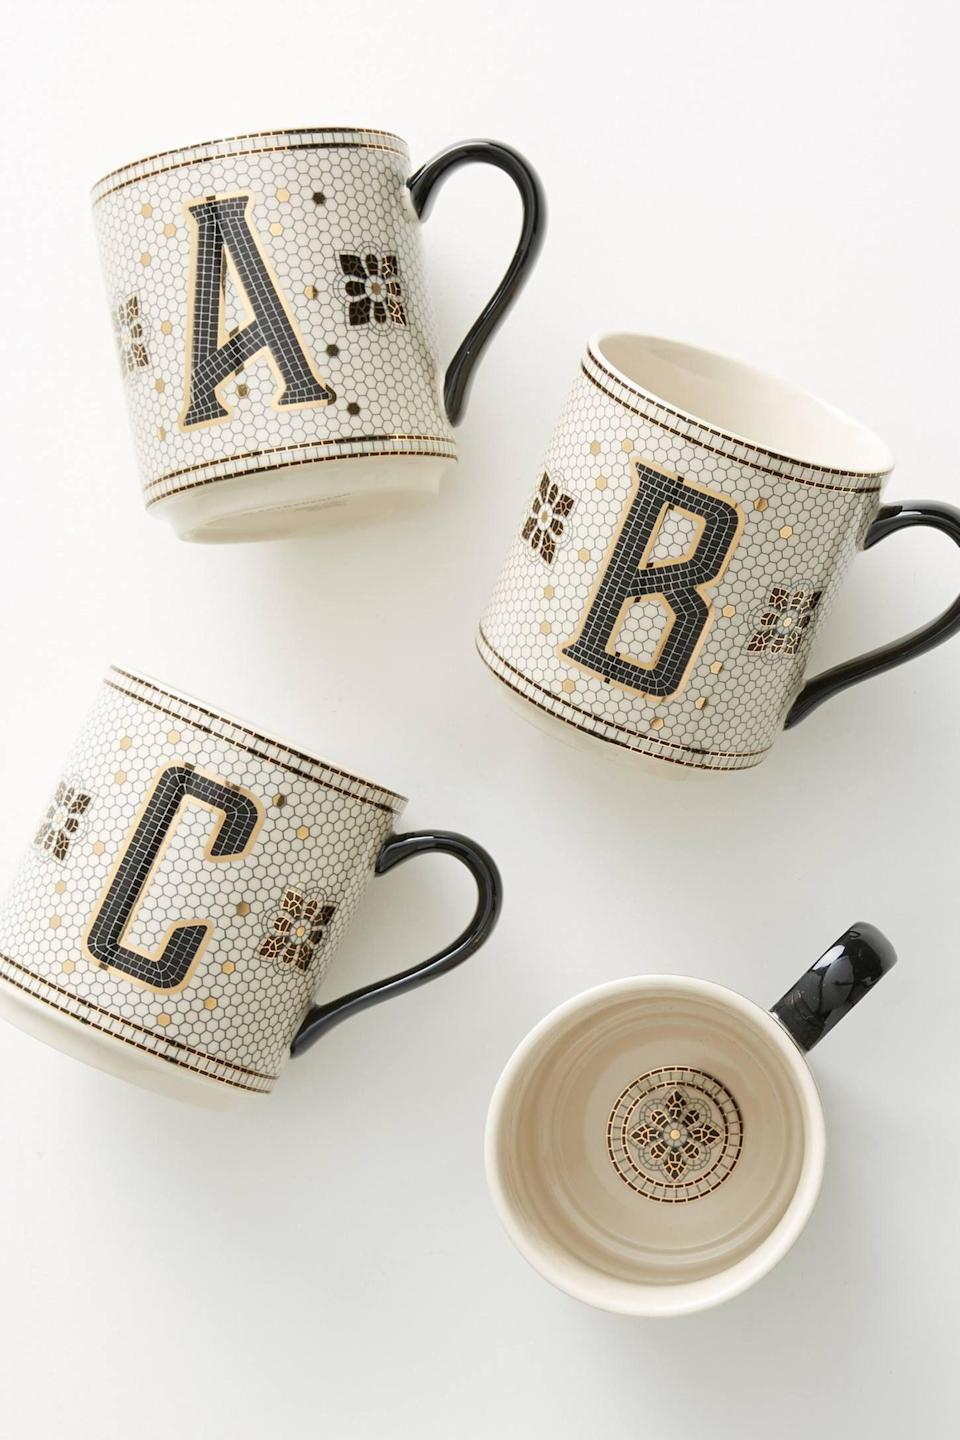 "<p><strong>Anthropologie</strong></p><p>anthropologie.com</p><p><strong>$10.00</strong></p><p><a href=""https://go.redirectingat.com?id=74968X1596630&url=https%3A%2F%2Fwww.anthropologie.com%2Fshop%2Ftiled-margot-monogram-mug&sref=https%3A%2F%2Fwww.housebeautiful.com%2Fshopping%2Fg797%2Fbest-gifts-under-25%2F"" rel=""nofollow noopener"" target=""_blank"" data-ylk=""slk:Shop Now"" class=""link rapid-noclick-resp"">Shop Now</a></p>"